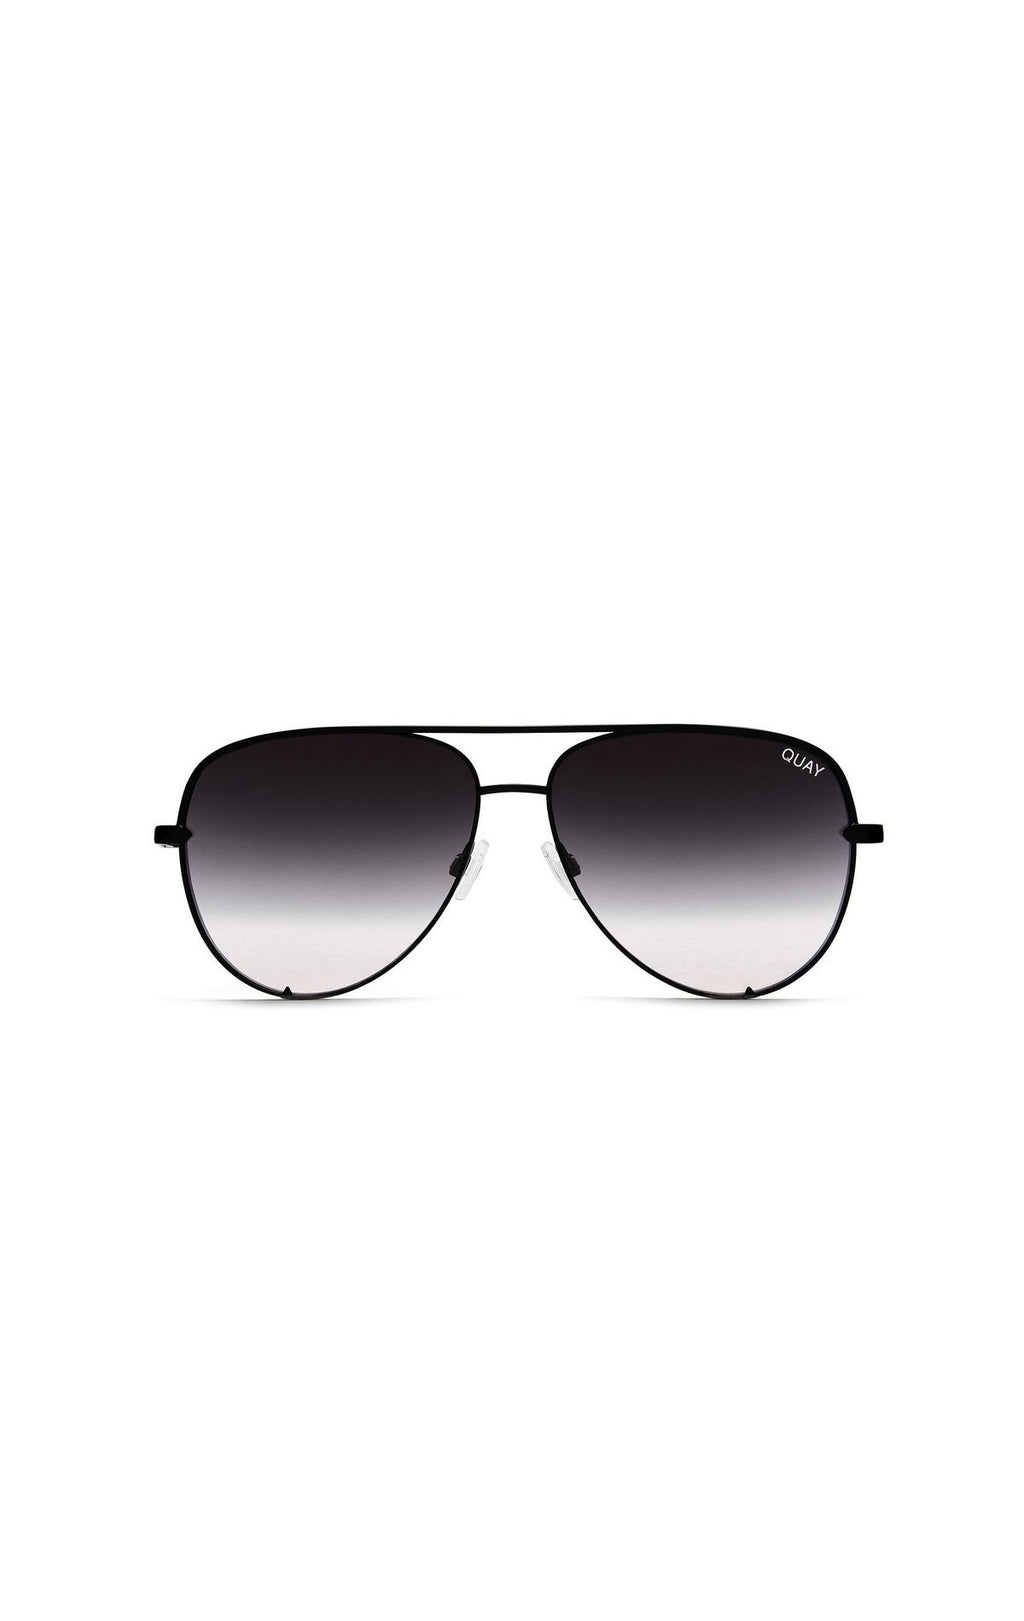 QUAY HIGH KEY OVERSIZED AVIATOR SUNGLASSES FRONT